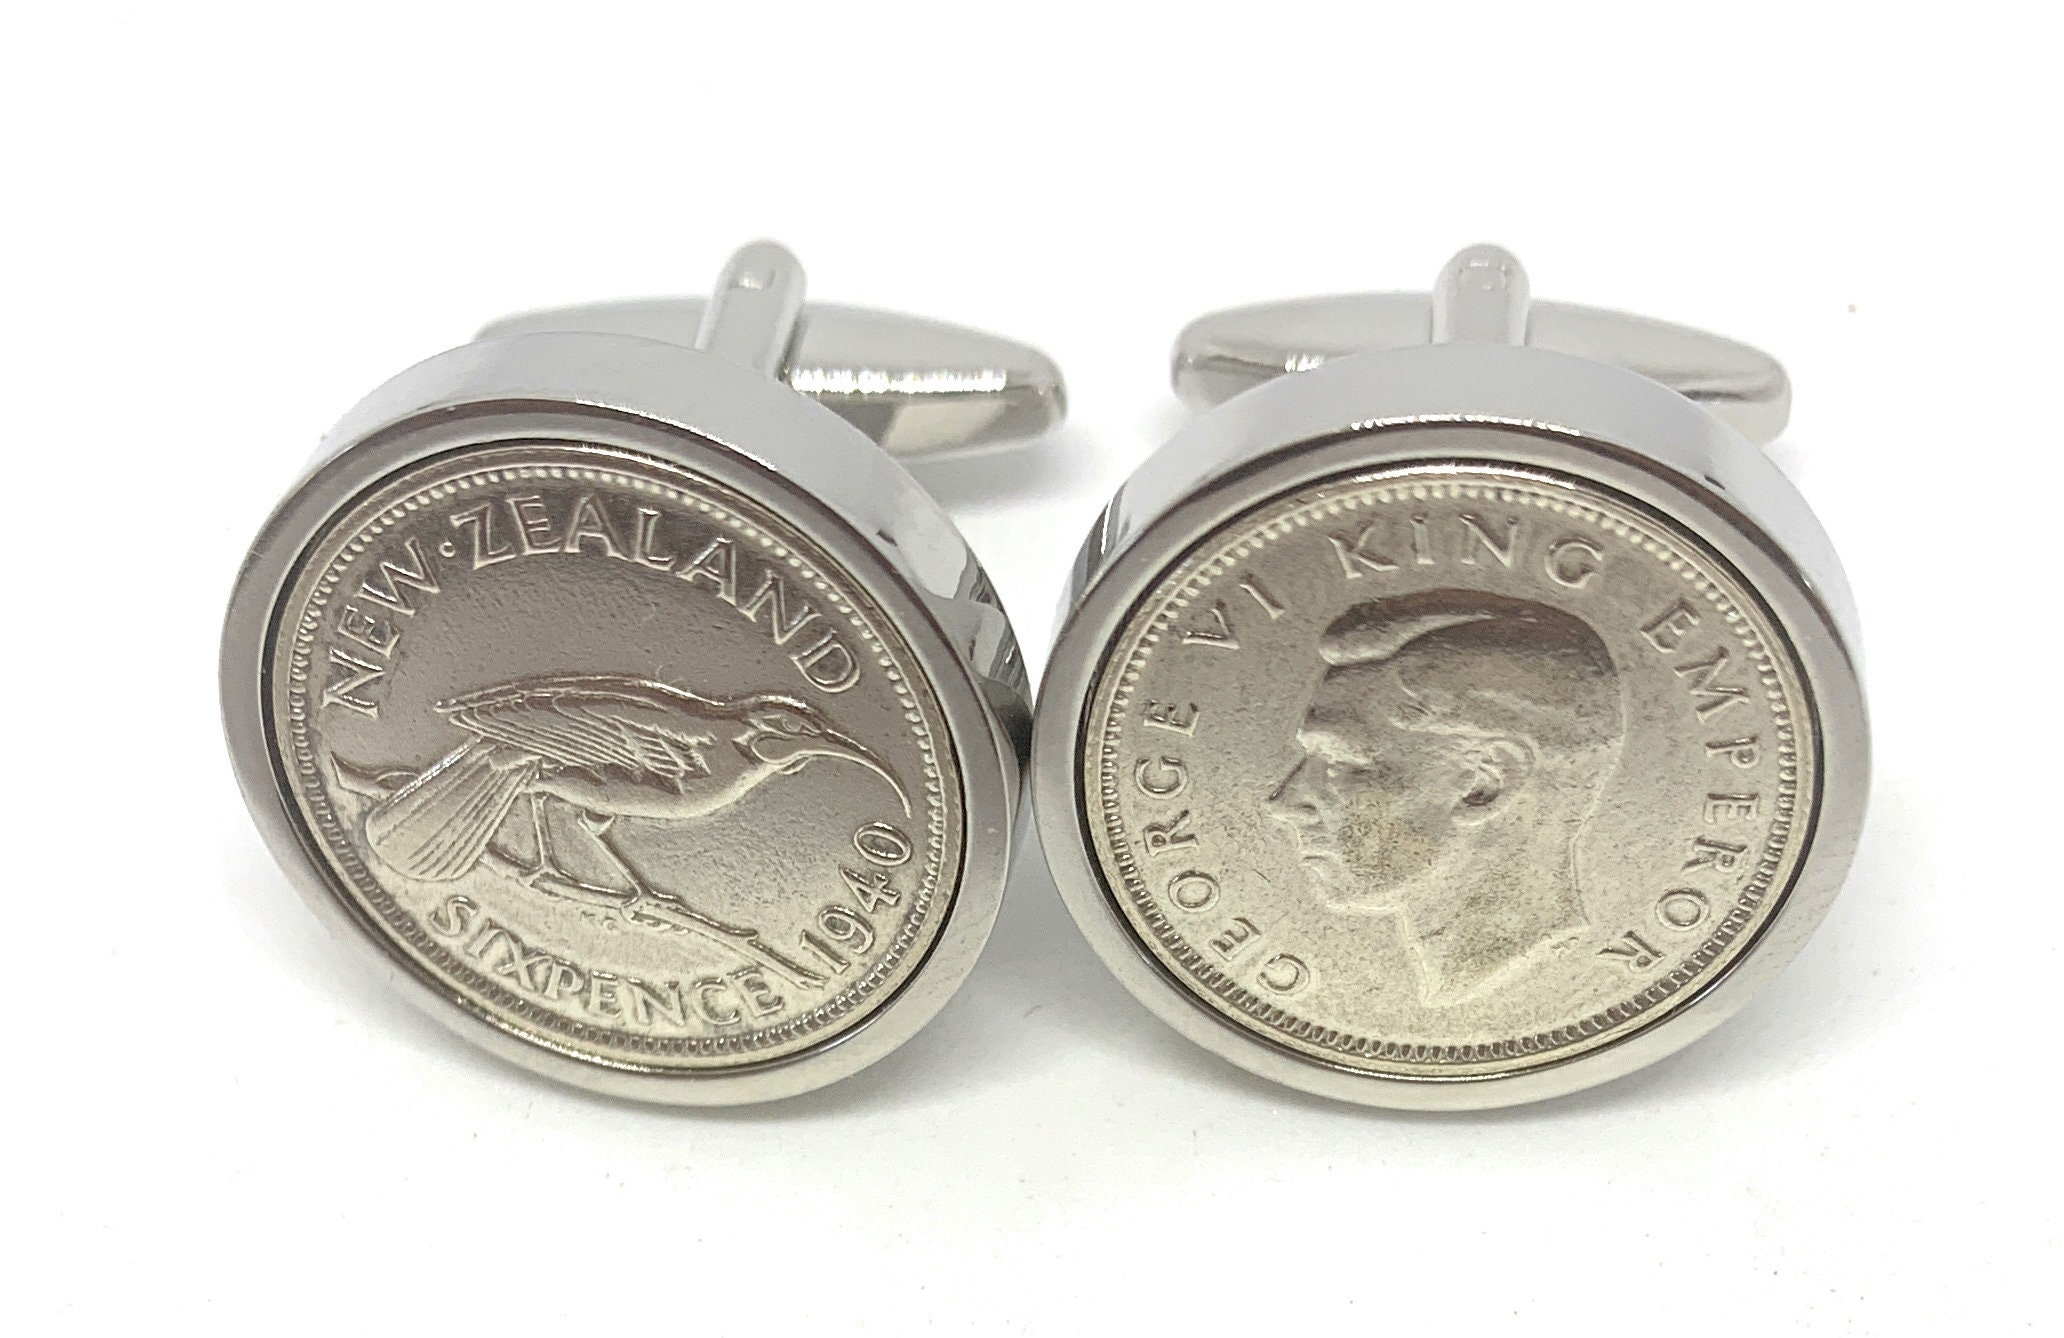 Original New Zealand sixpence coins Great gift from 1940 81st Thinking Of You 1940 Silver New Zealand Sixpence Cufflinks 81st birthday